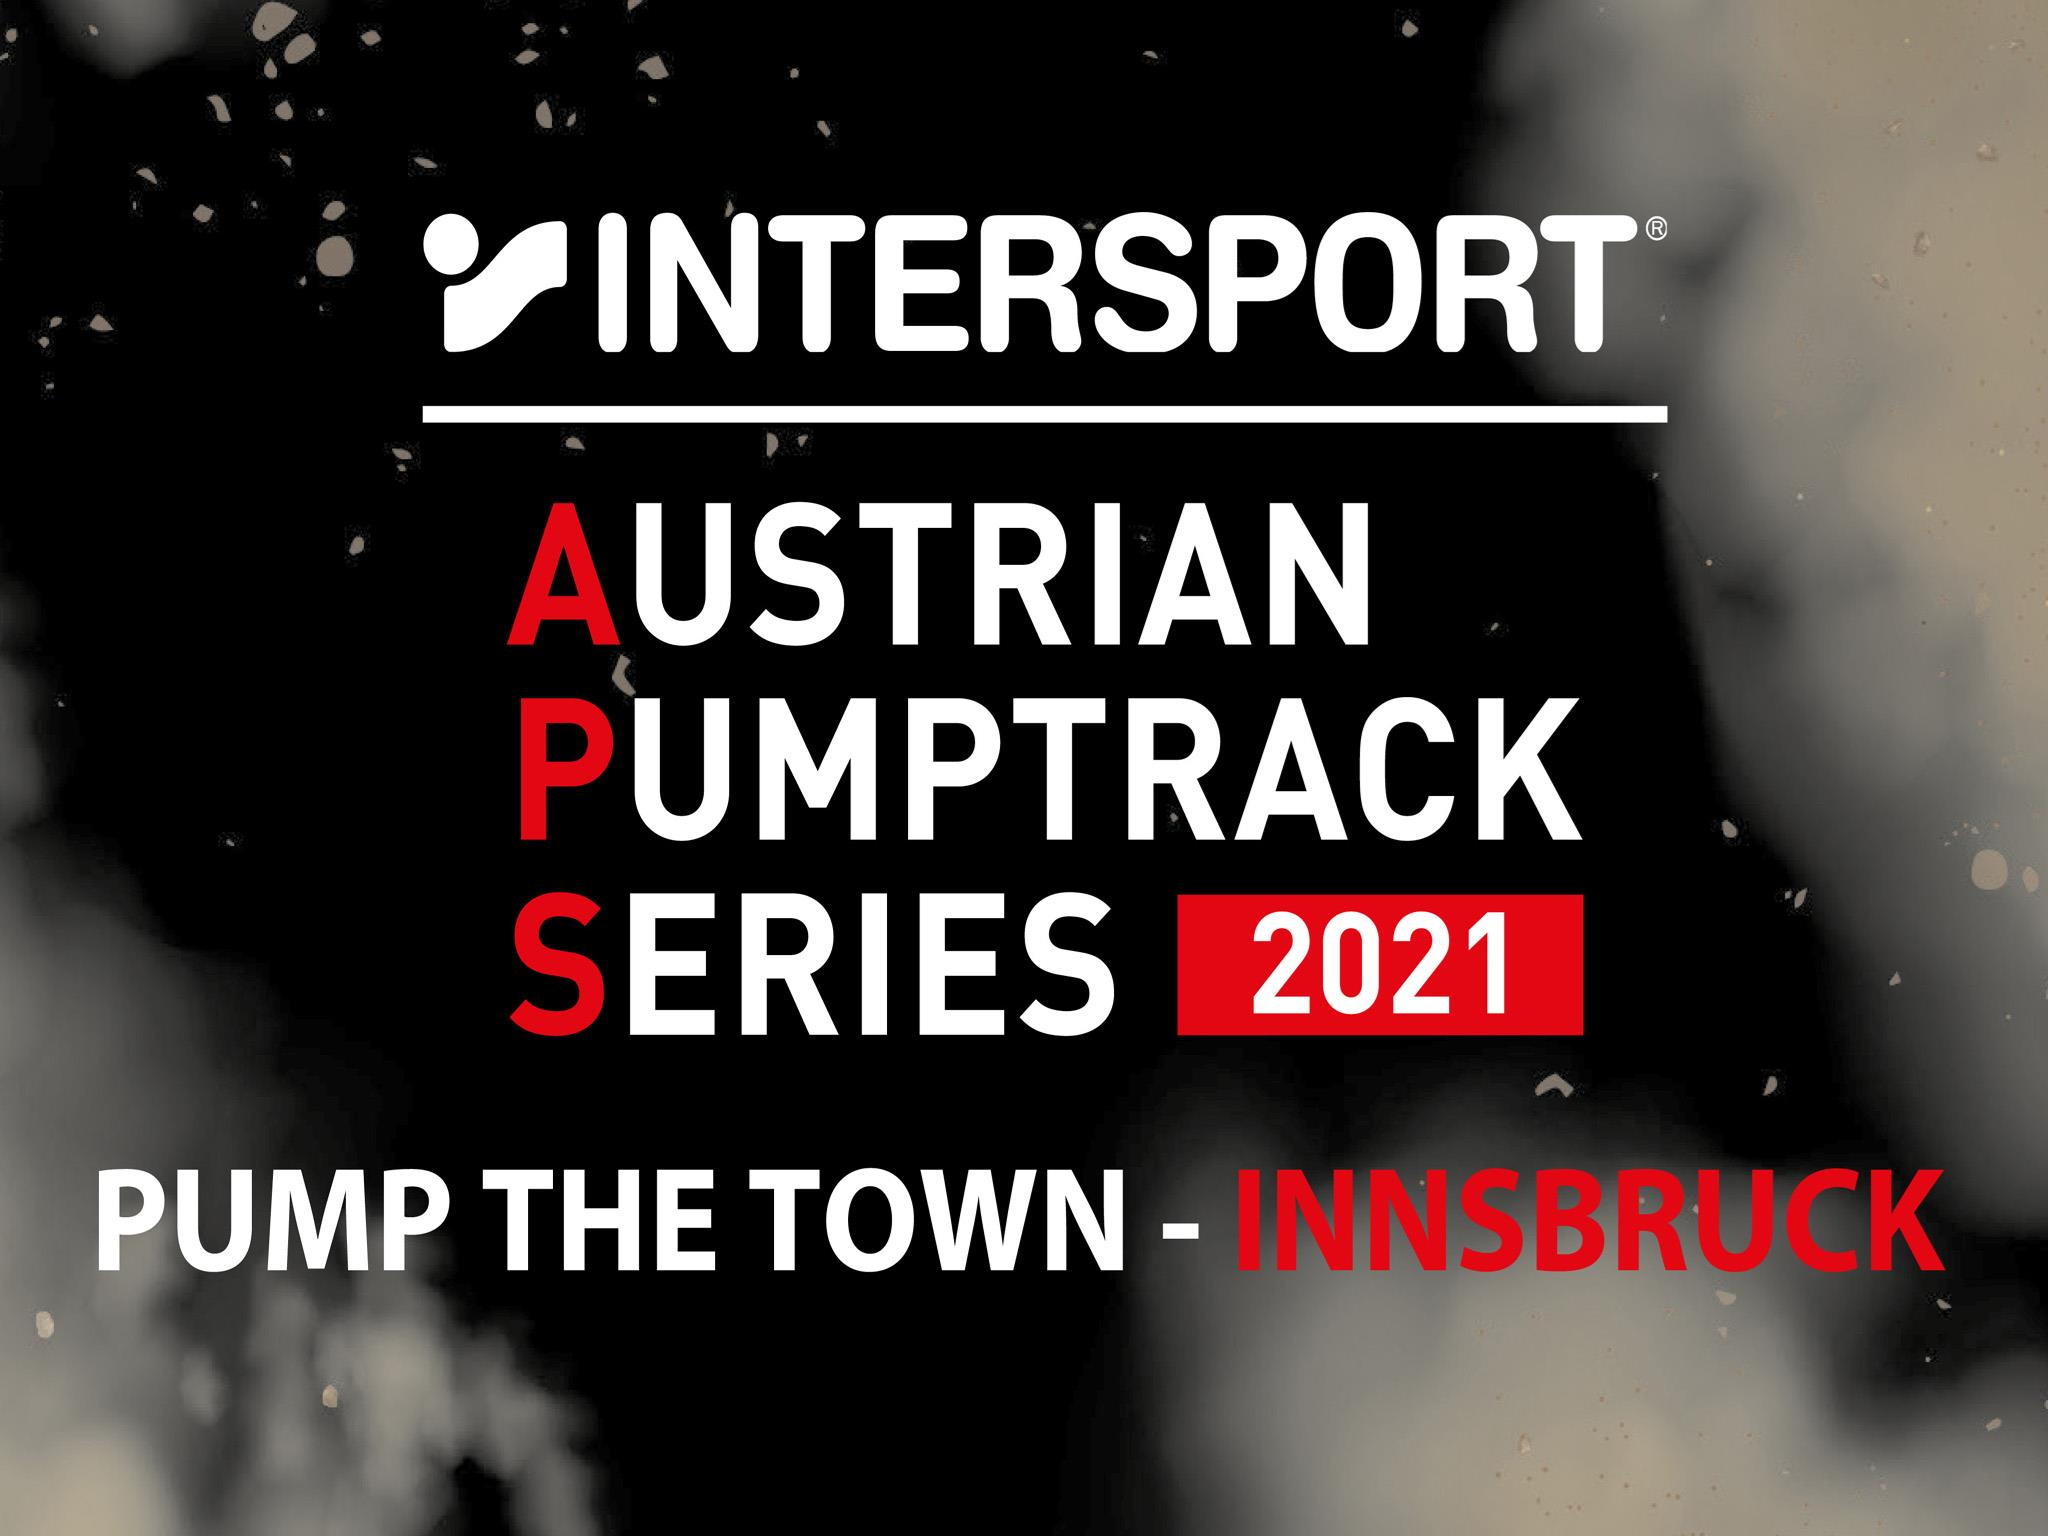 INTERSPORT Austrian Pumptrack Series 2021